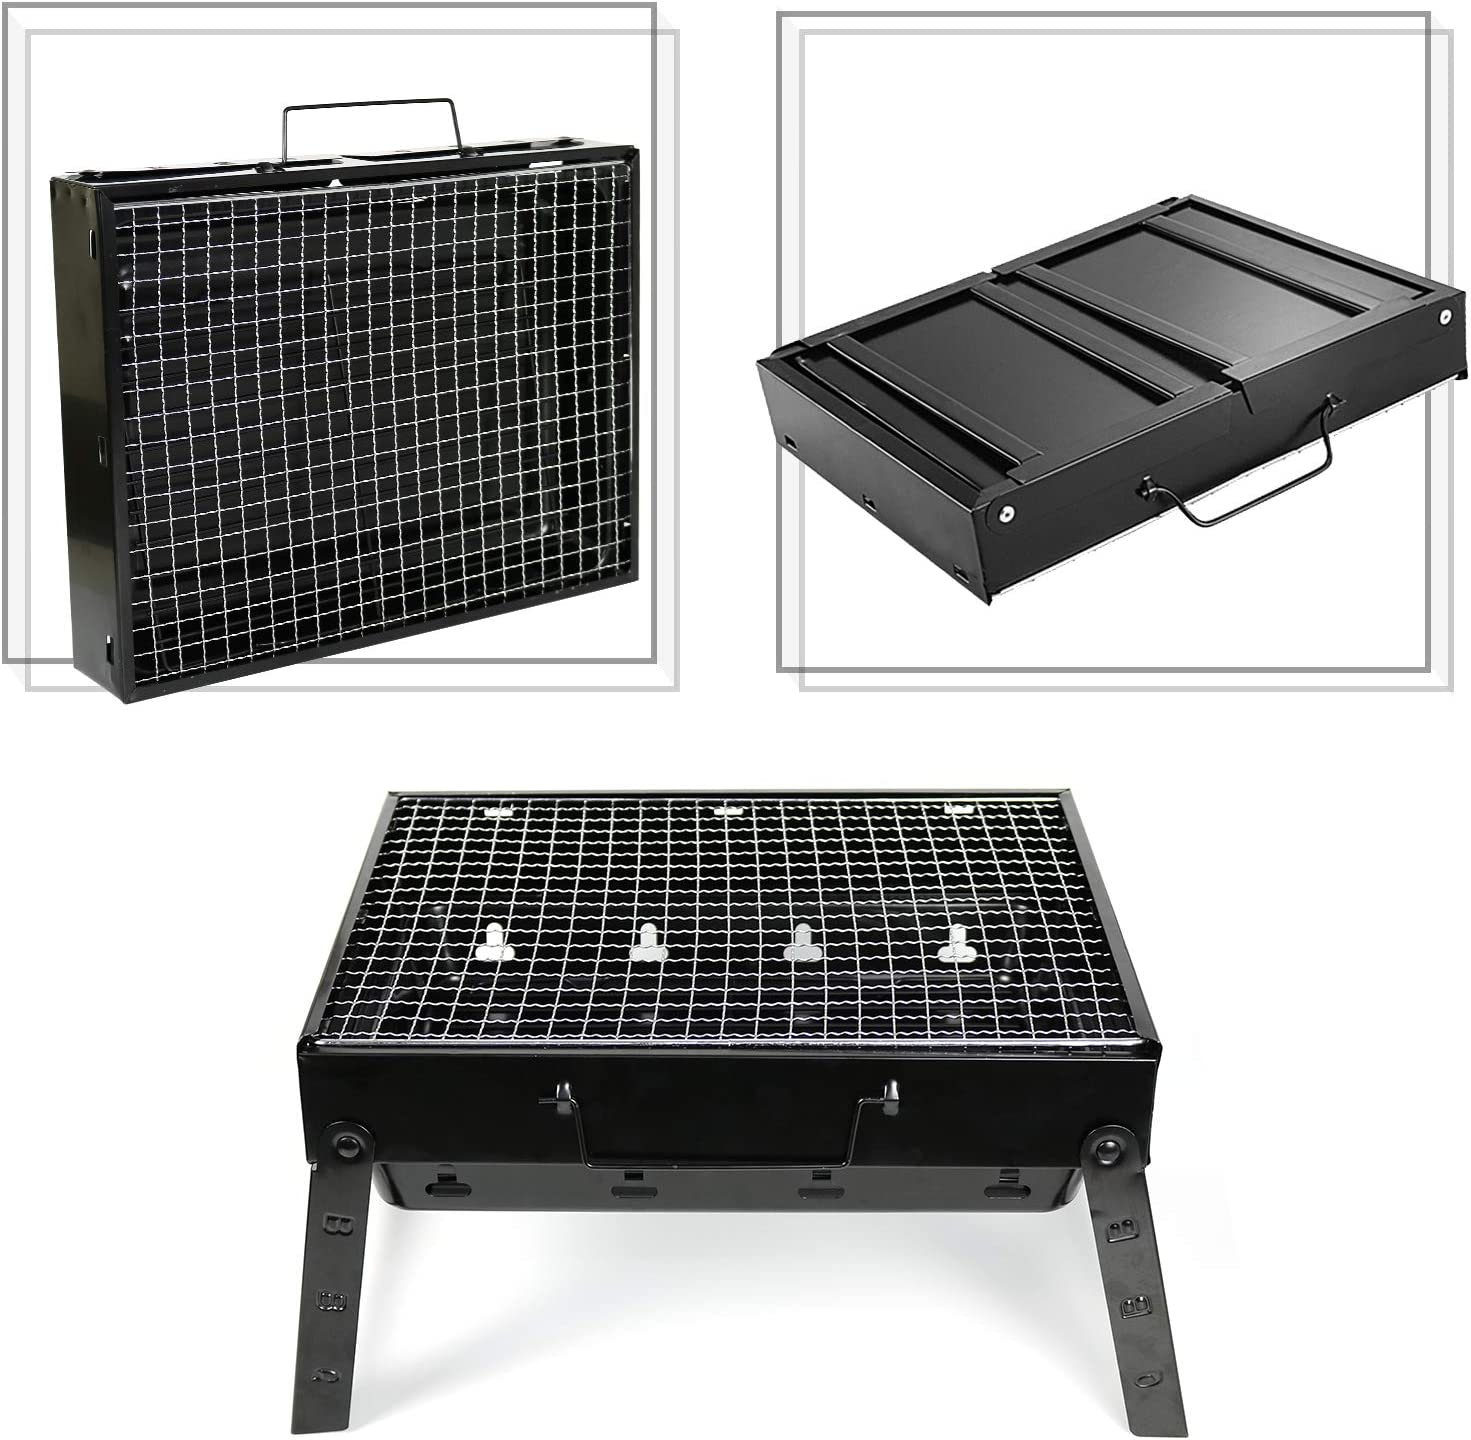 Cooking Folding Charcoal Grill for Outdoor Grilling Picnics Party 13.7x10.6x7.5 TRENDBOX BBQ Grill